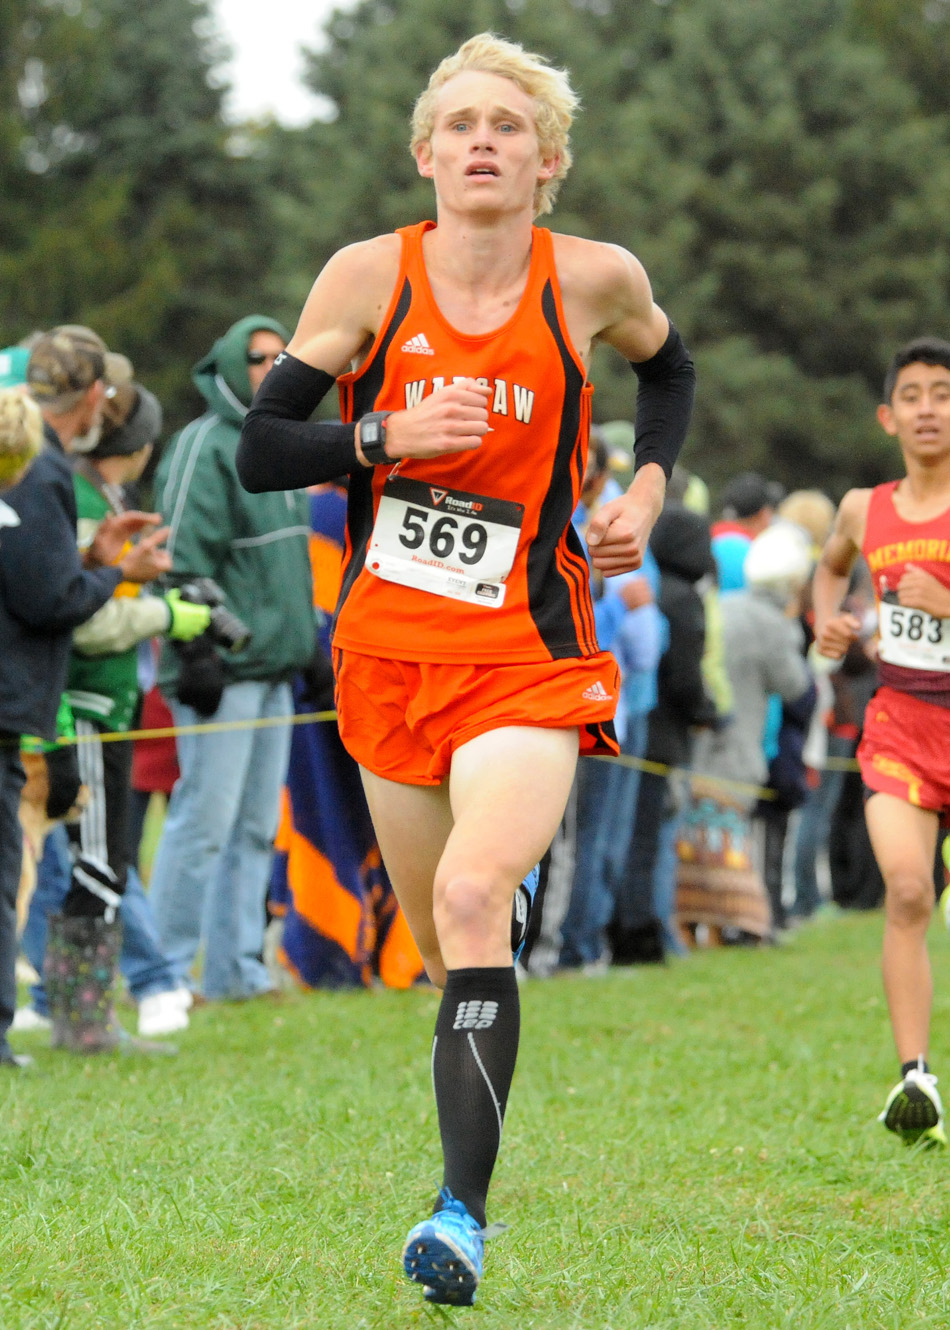 Warsaw's Owen Glogovsky will look to better his performance at the Culver Academy Cross Country Sectional after falling off the pace at the NLC. (Photo by Mike Deak)